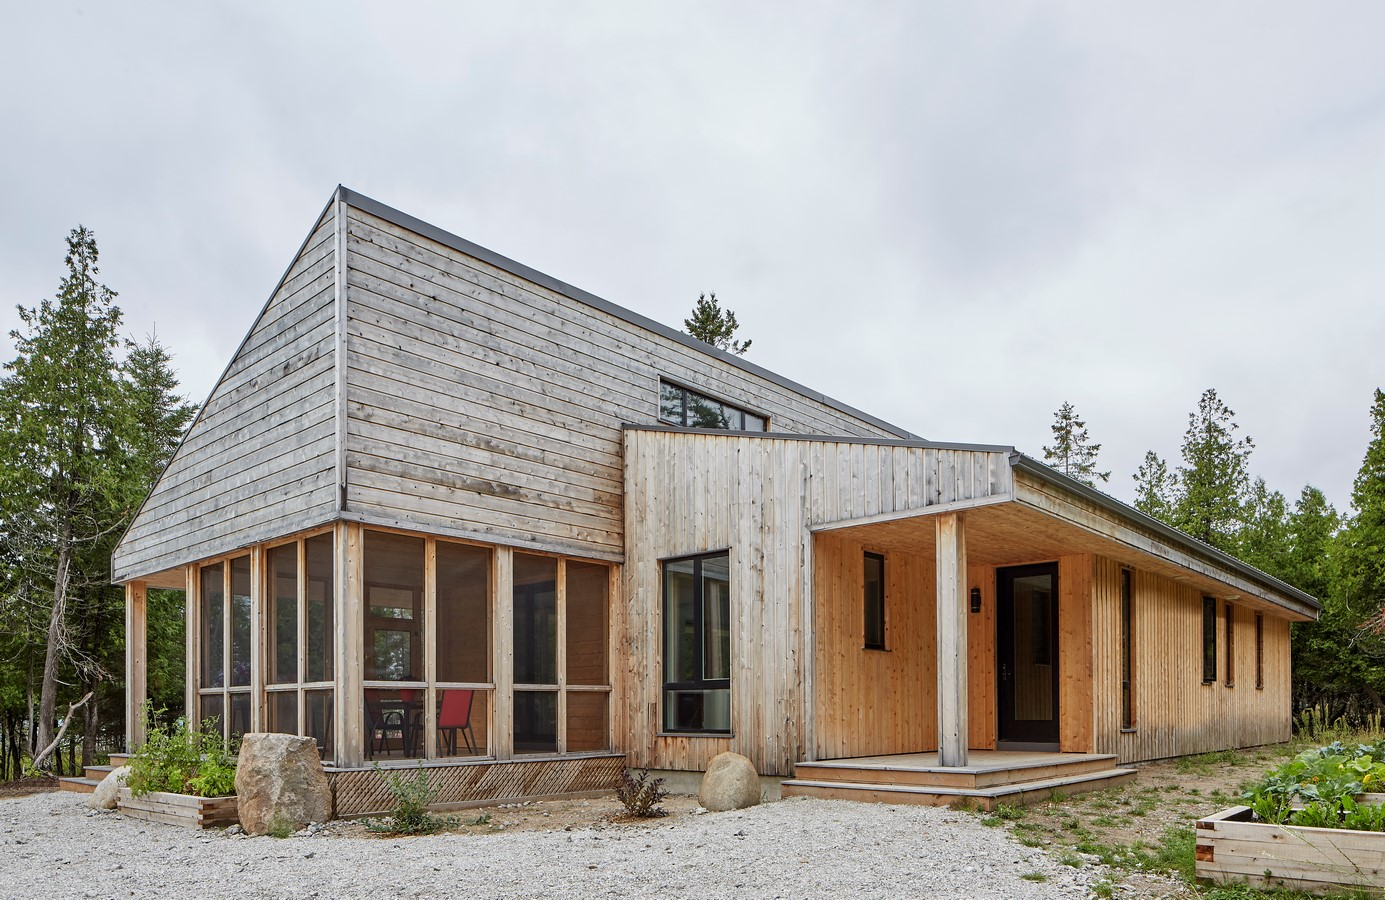 Manitoulin Island Off-Grid House by Solares Architecture - Sheet1